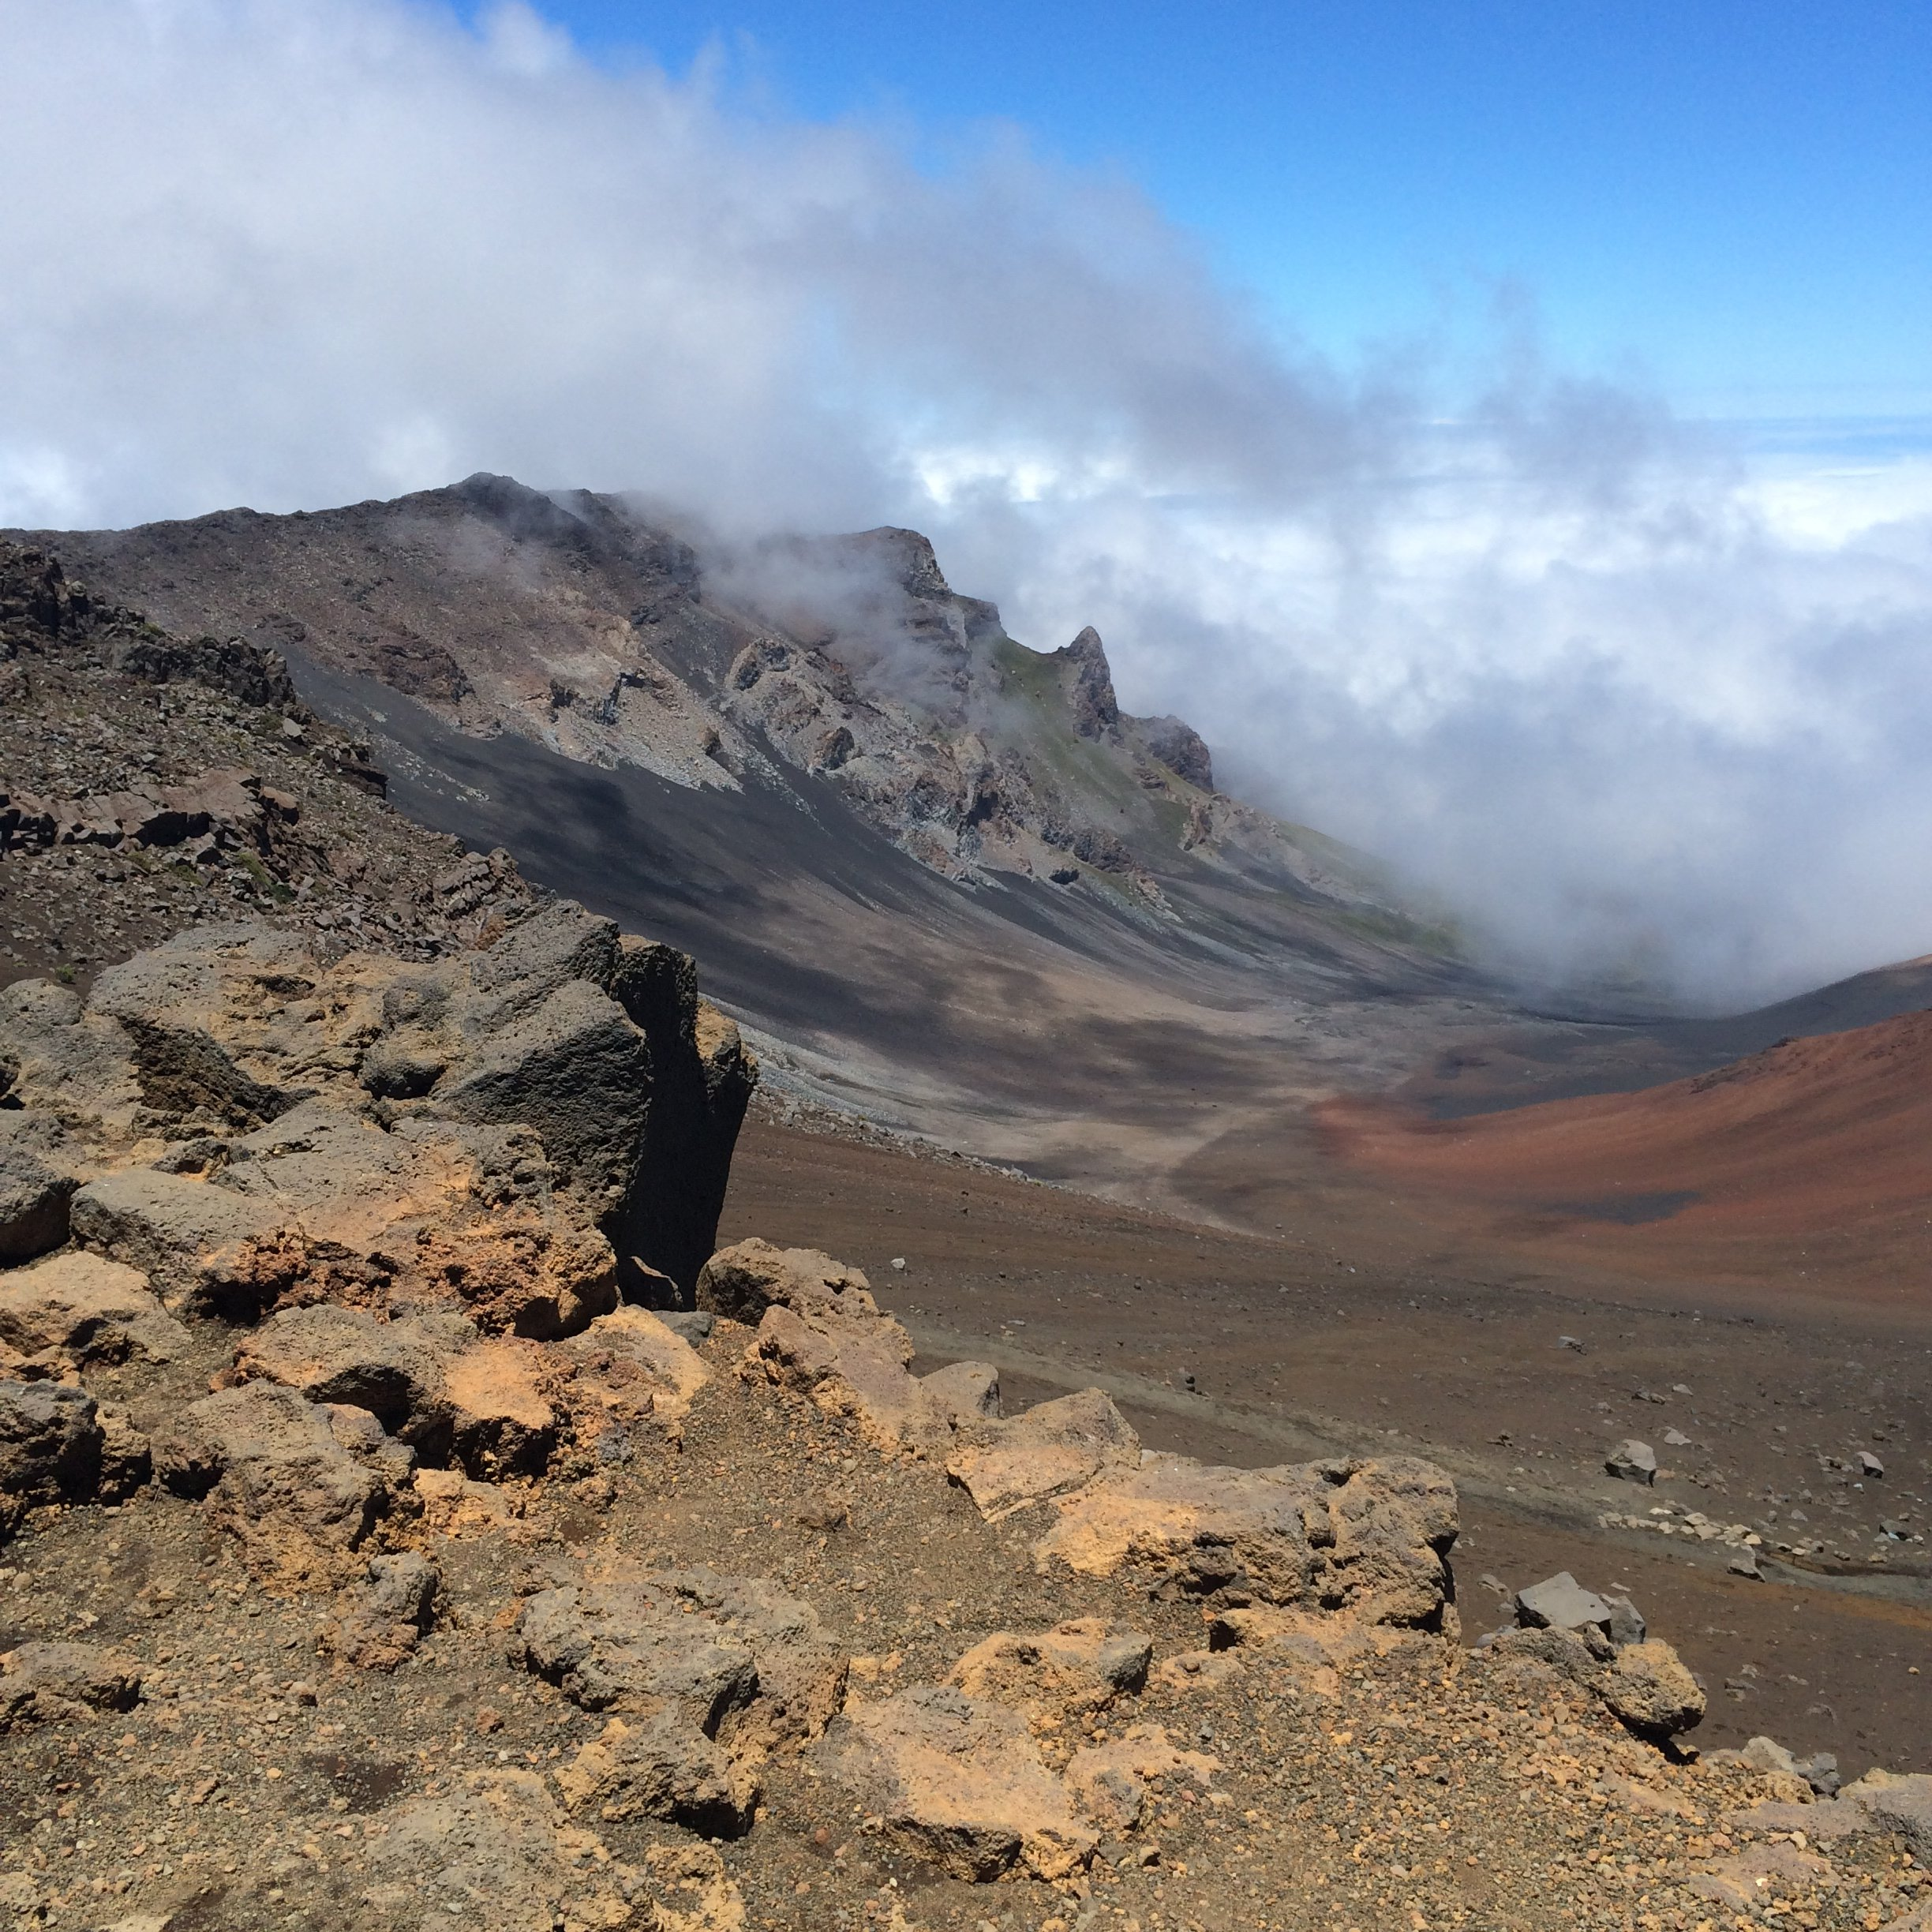 Hawaii - Watch for Altitude Sickness Symptoms